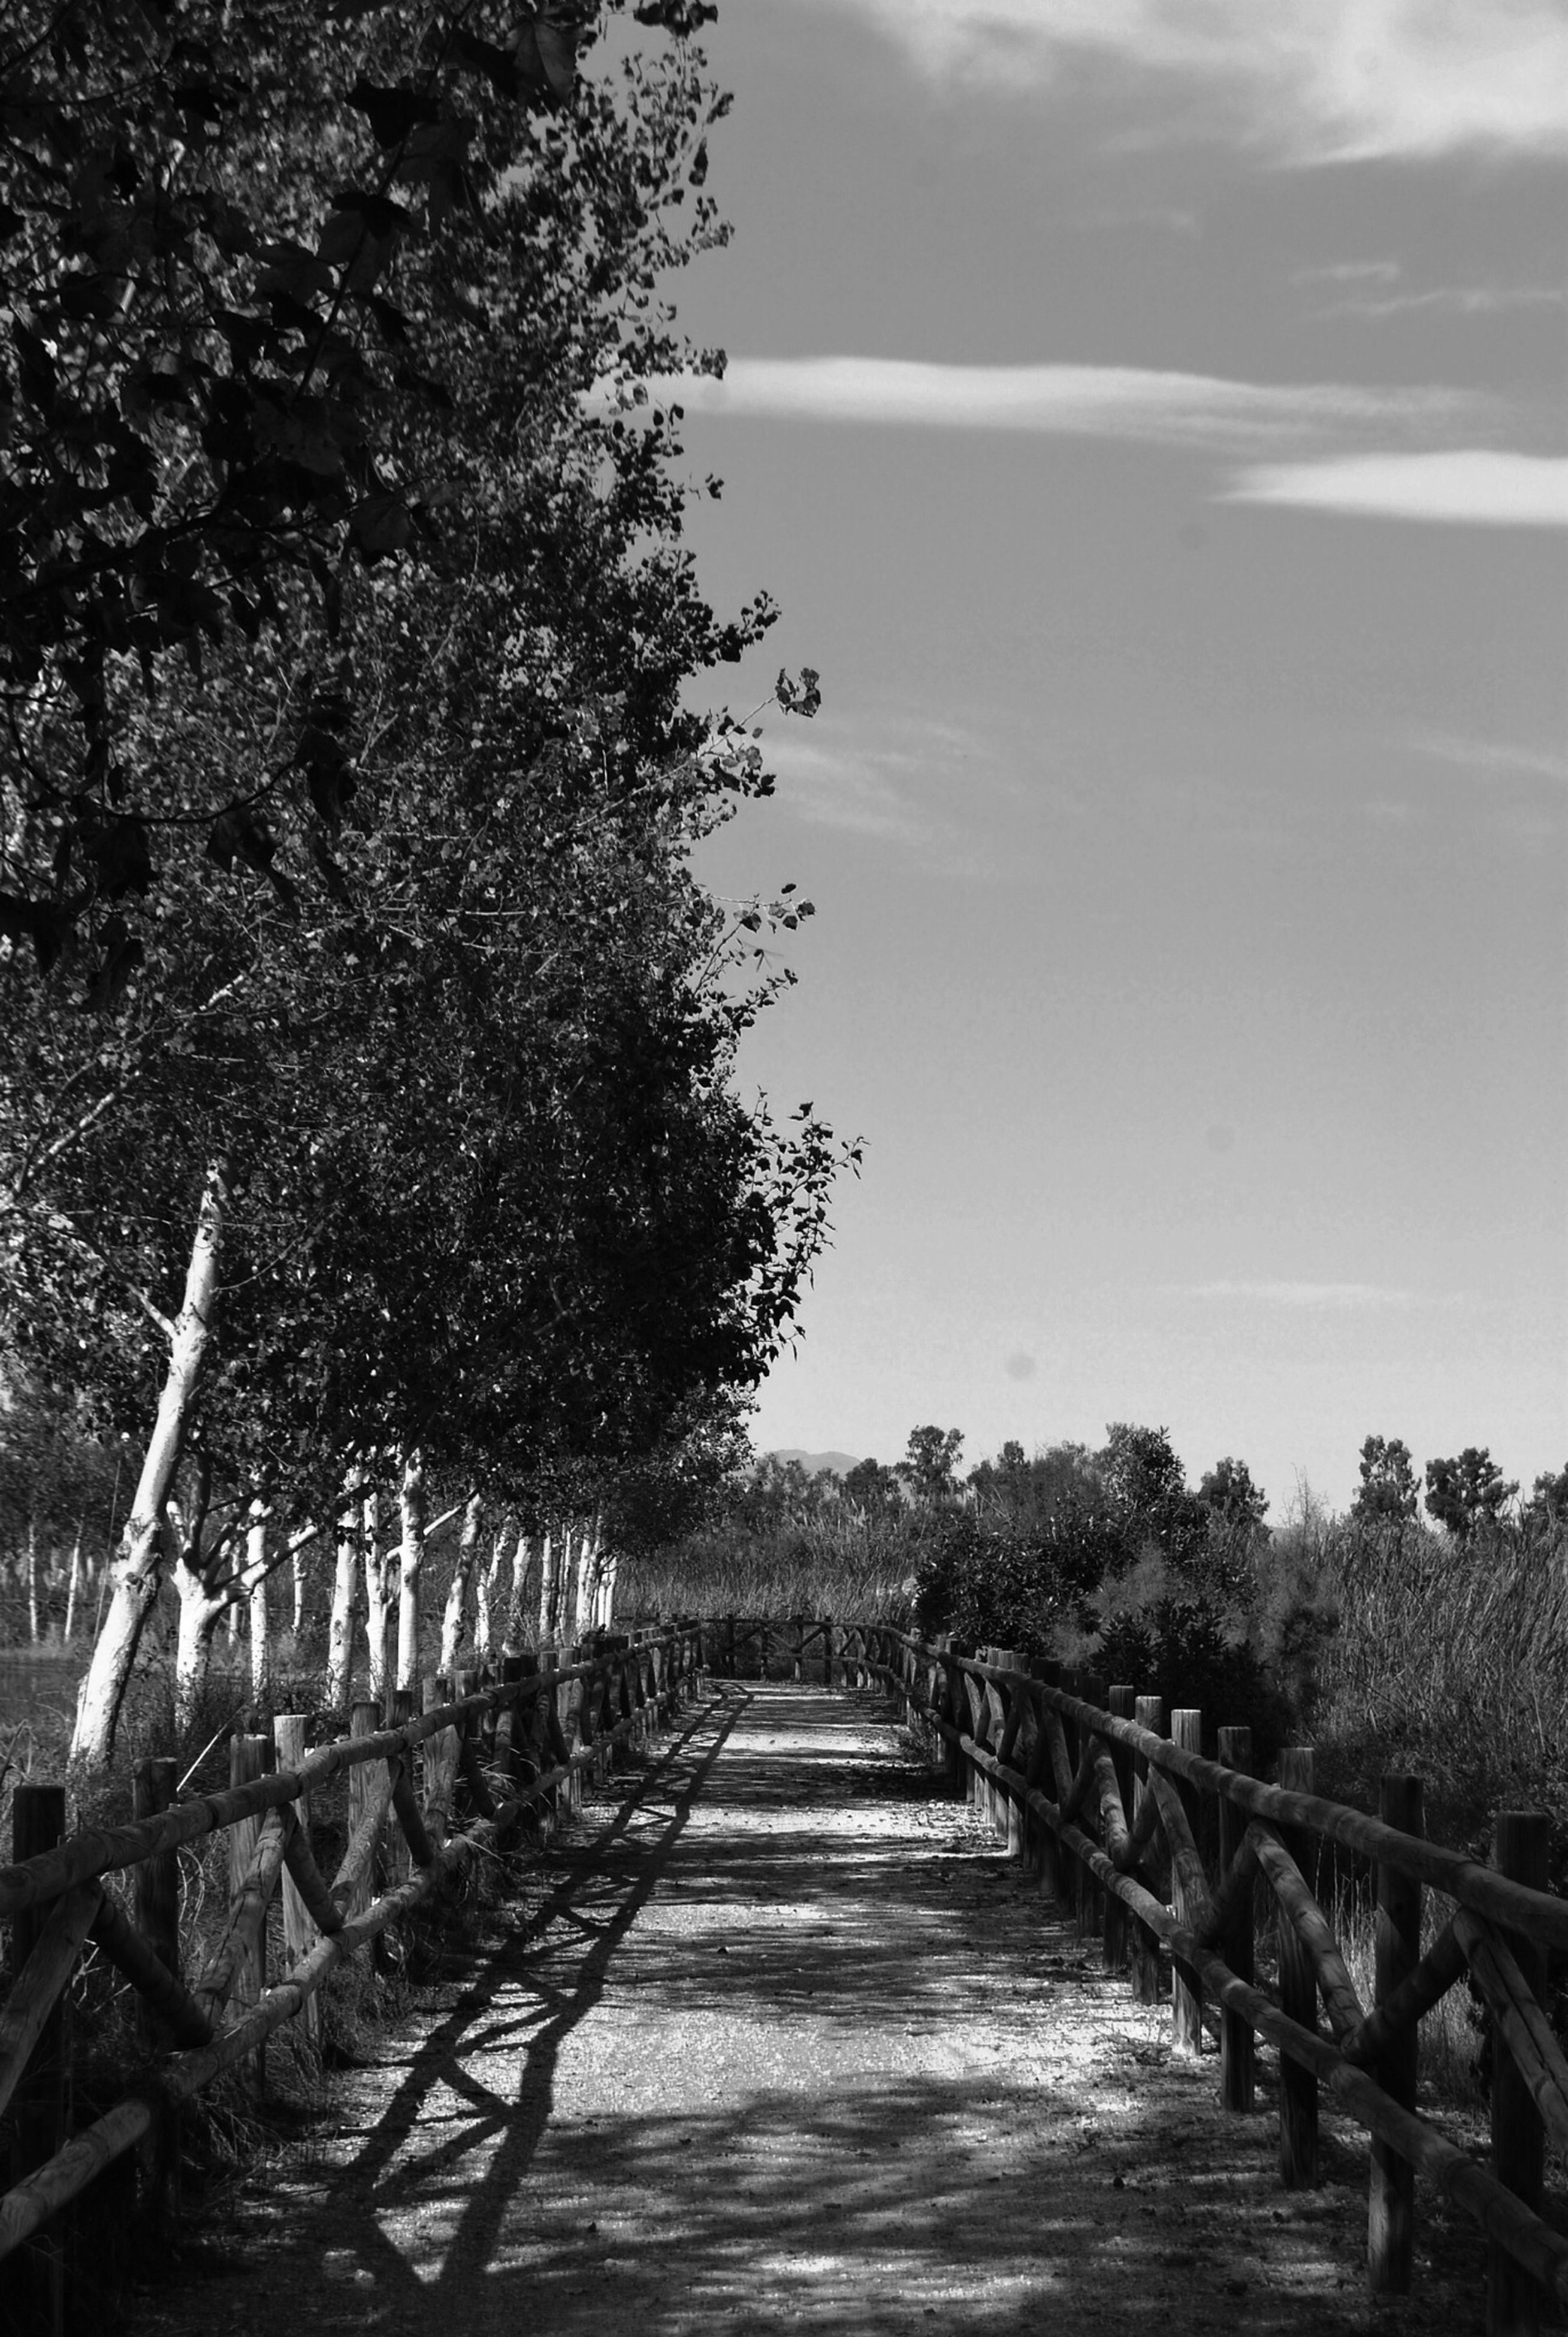 the way forward, tree, sky, diminishing perspective, tranquility, vanishing point, tranquil scene, footpath, growth, nature, walkway, pathway, railing, landscape, beauty in nature, scenics, narrow, day, wood - material, outdoors